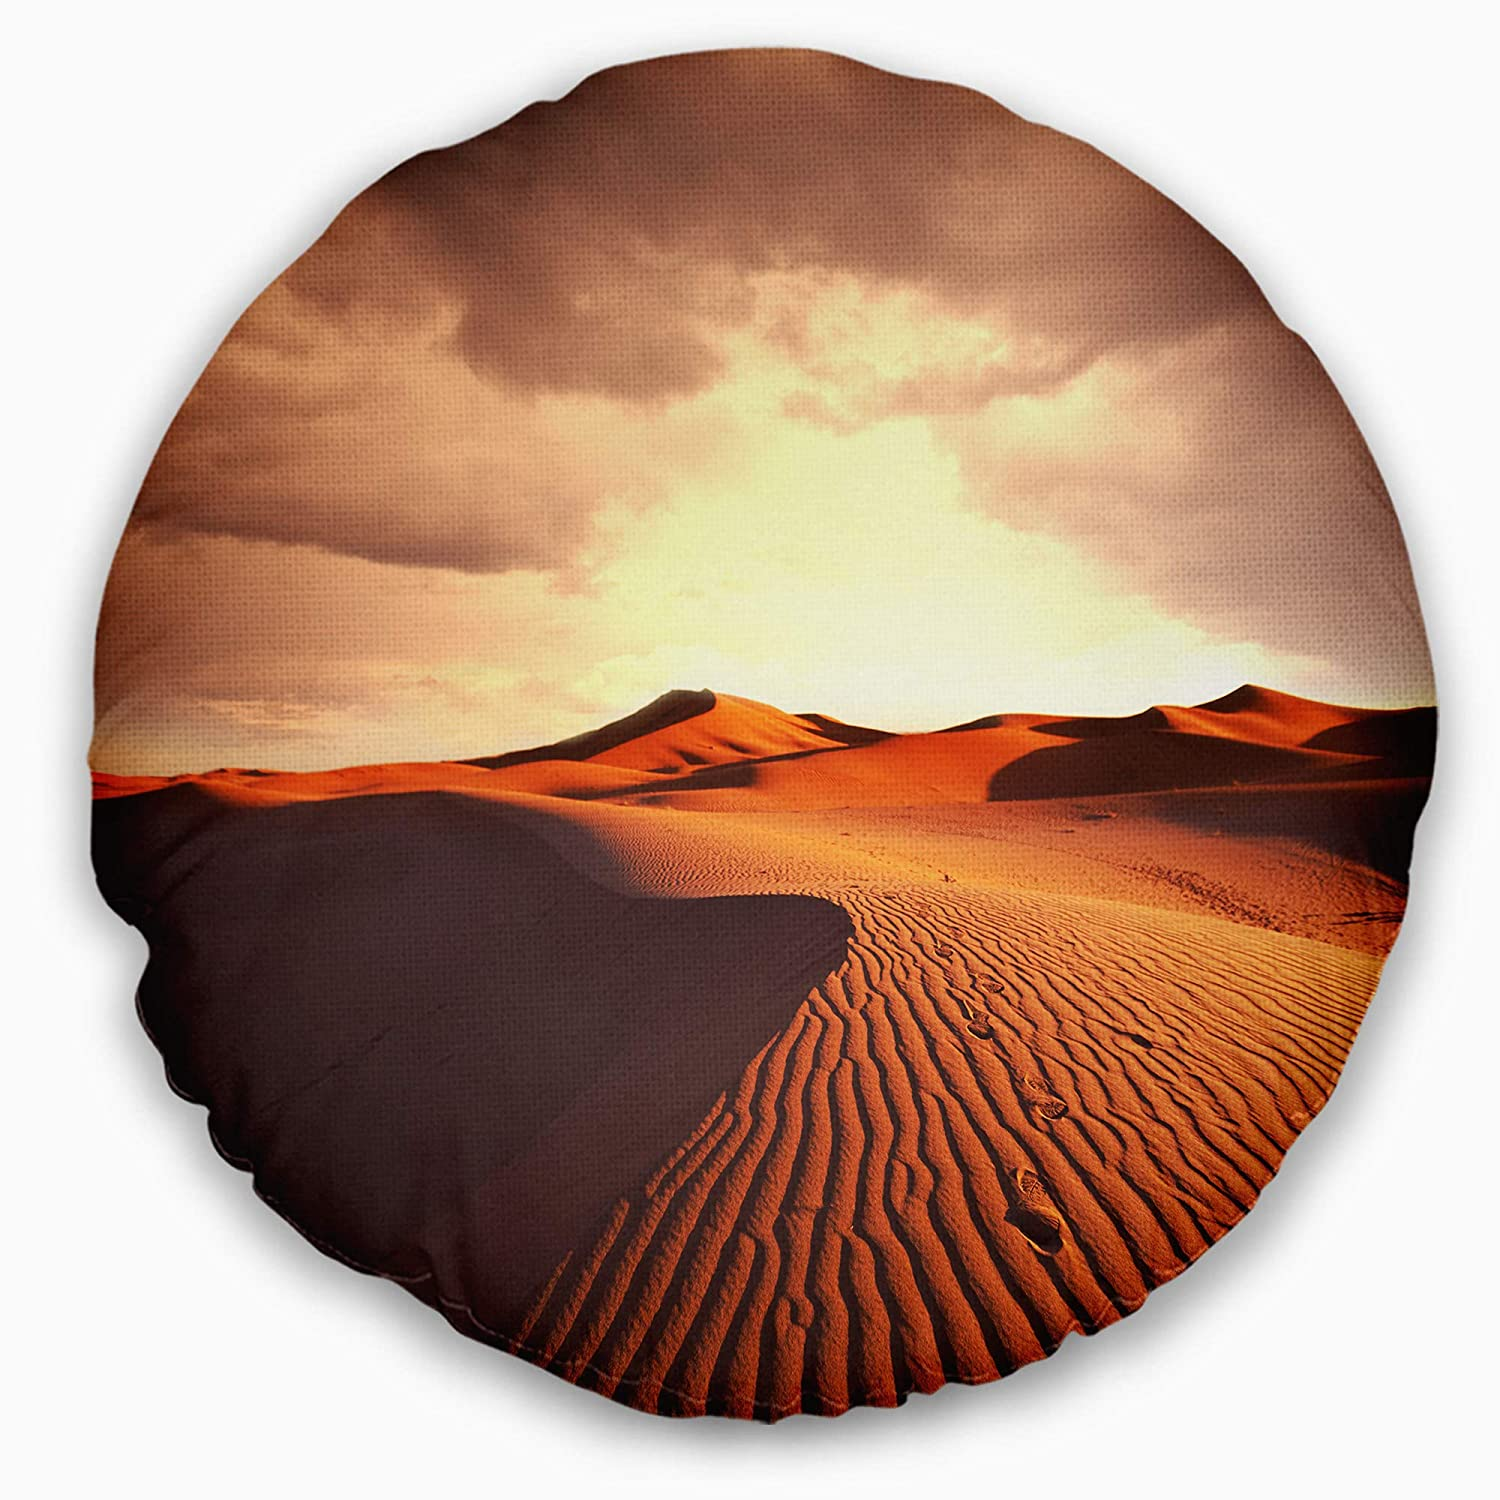 Designart CU12432-16-16-C Brown Desert Dunes at Sunrise' African Landscape Printed Round Cushion Cover for Living Room, Sofa, Throw Pillow, 16', Insert Side